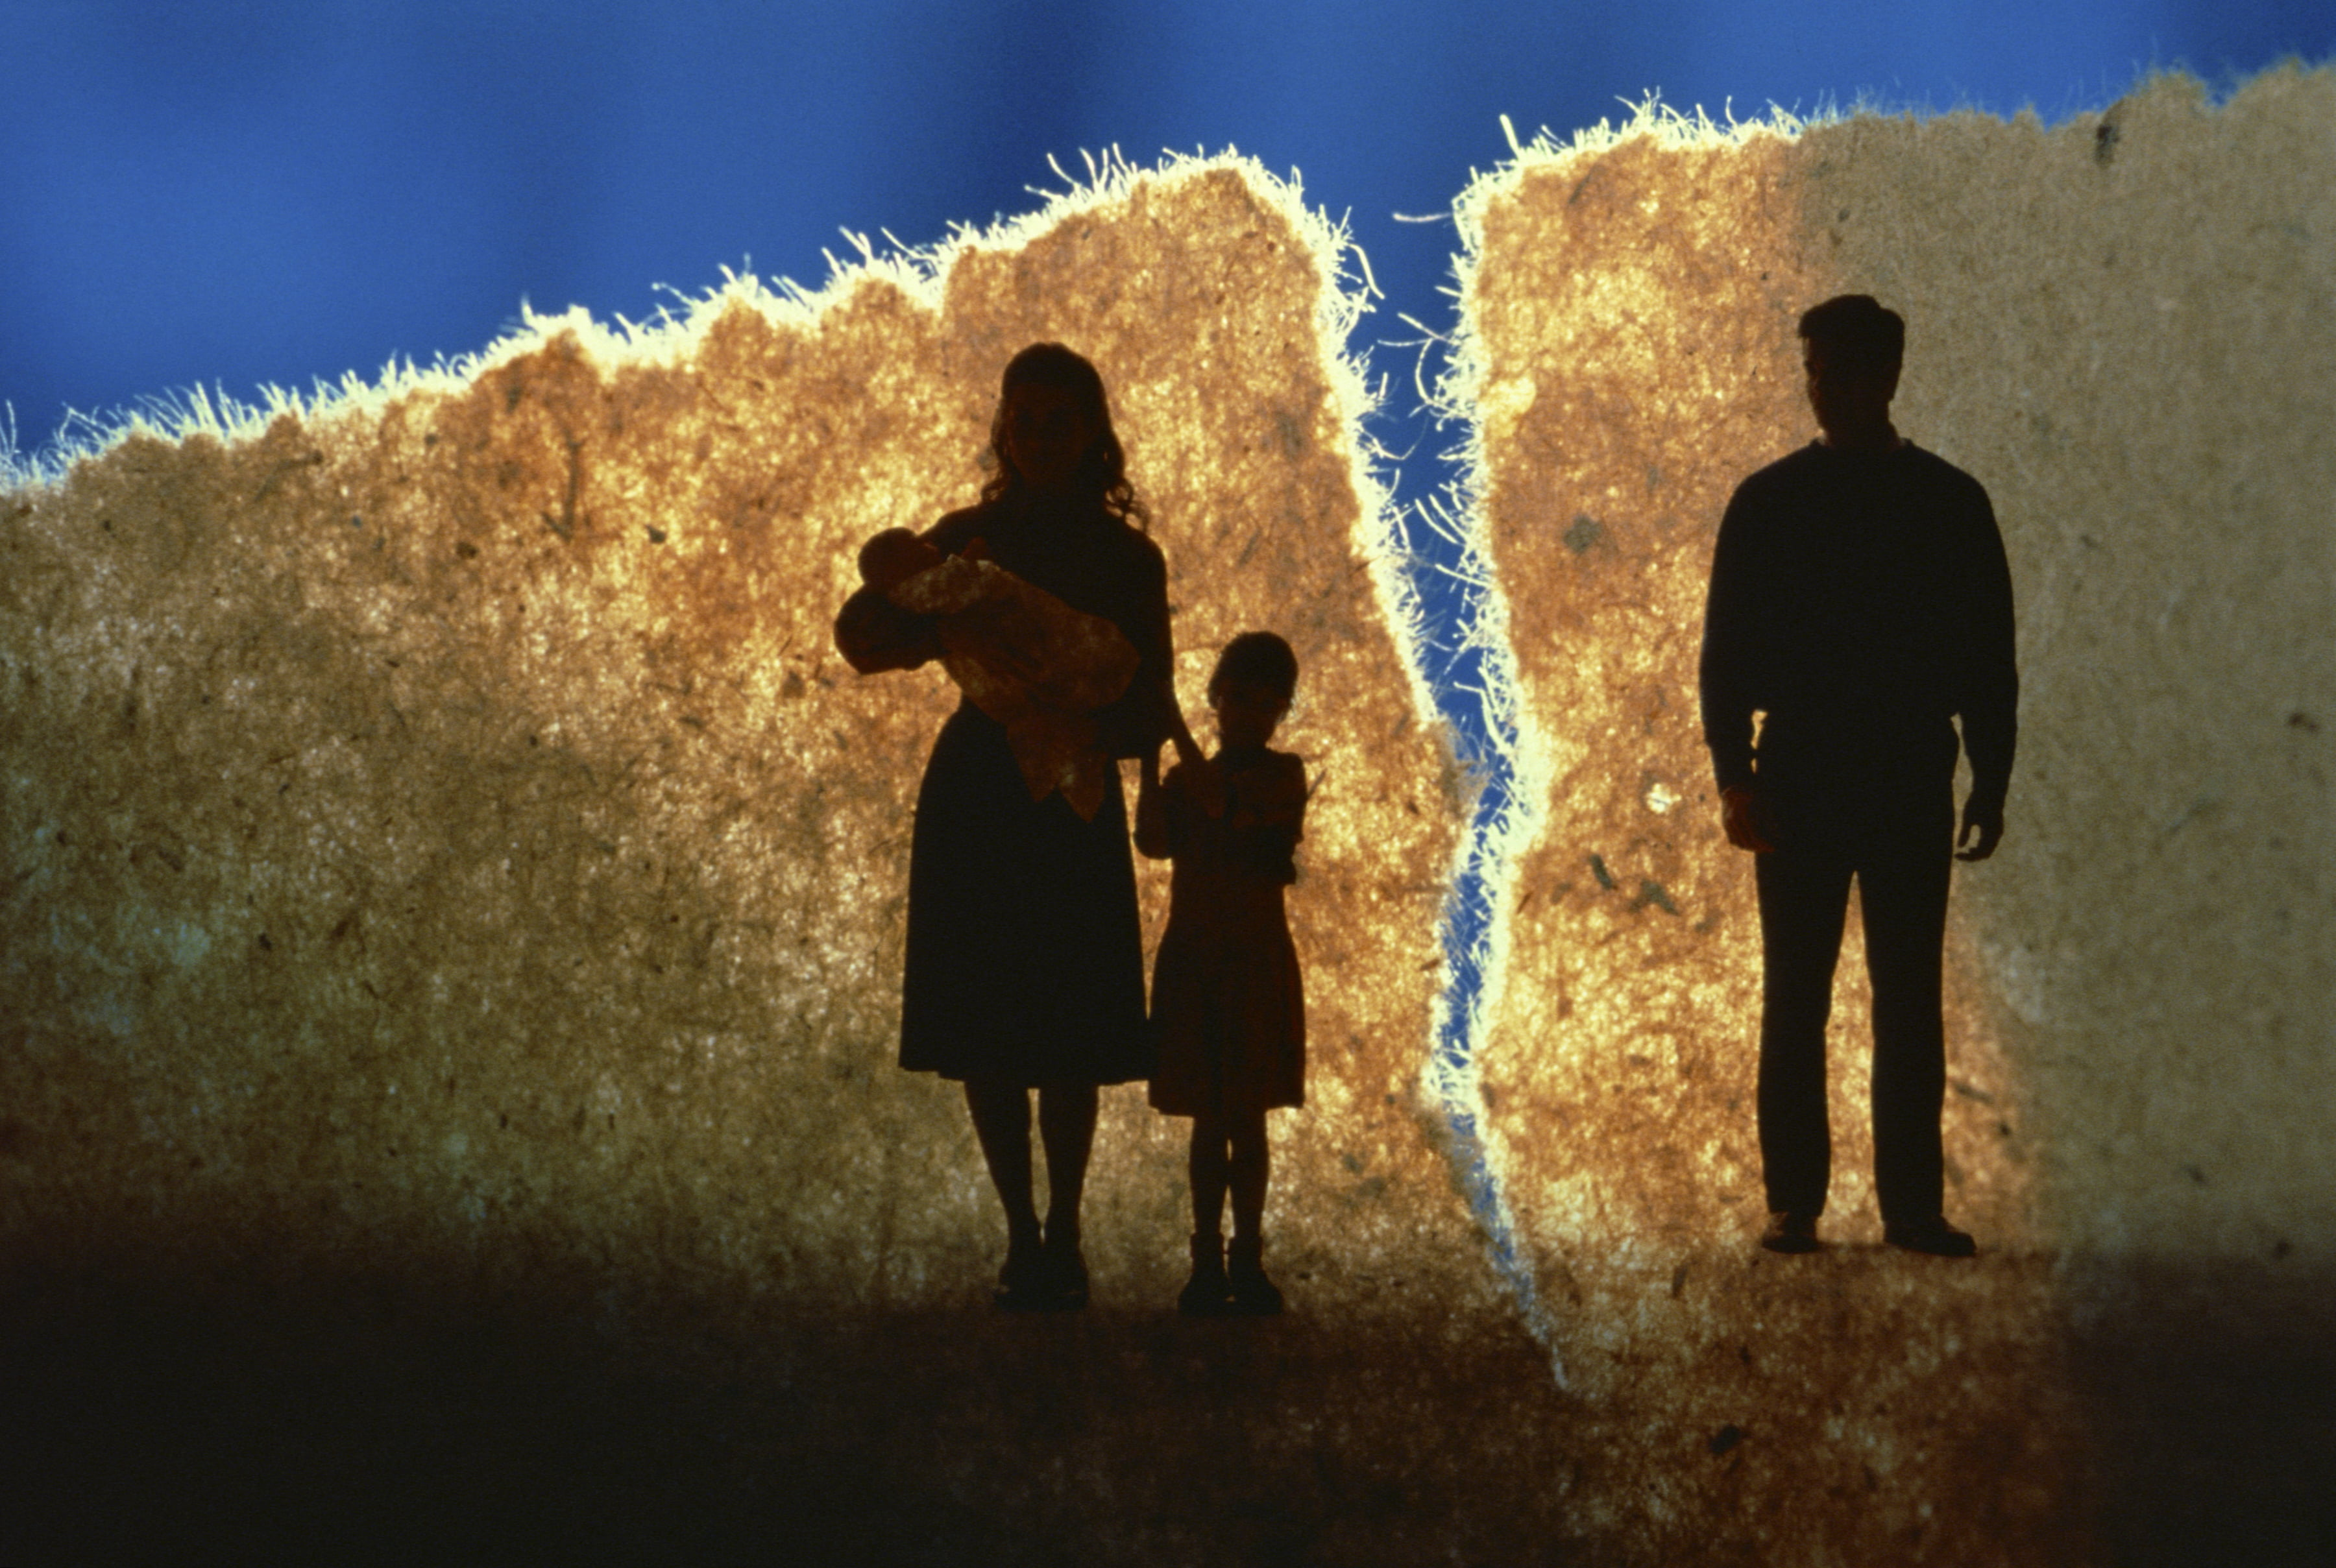 broken families effect to teenagers Family is family, and is not determined by marriage certificates, divorce papers, and adoption documents families are made in the heart the only time family becomes null is when those ties in the heart are cut.